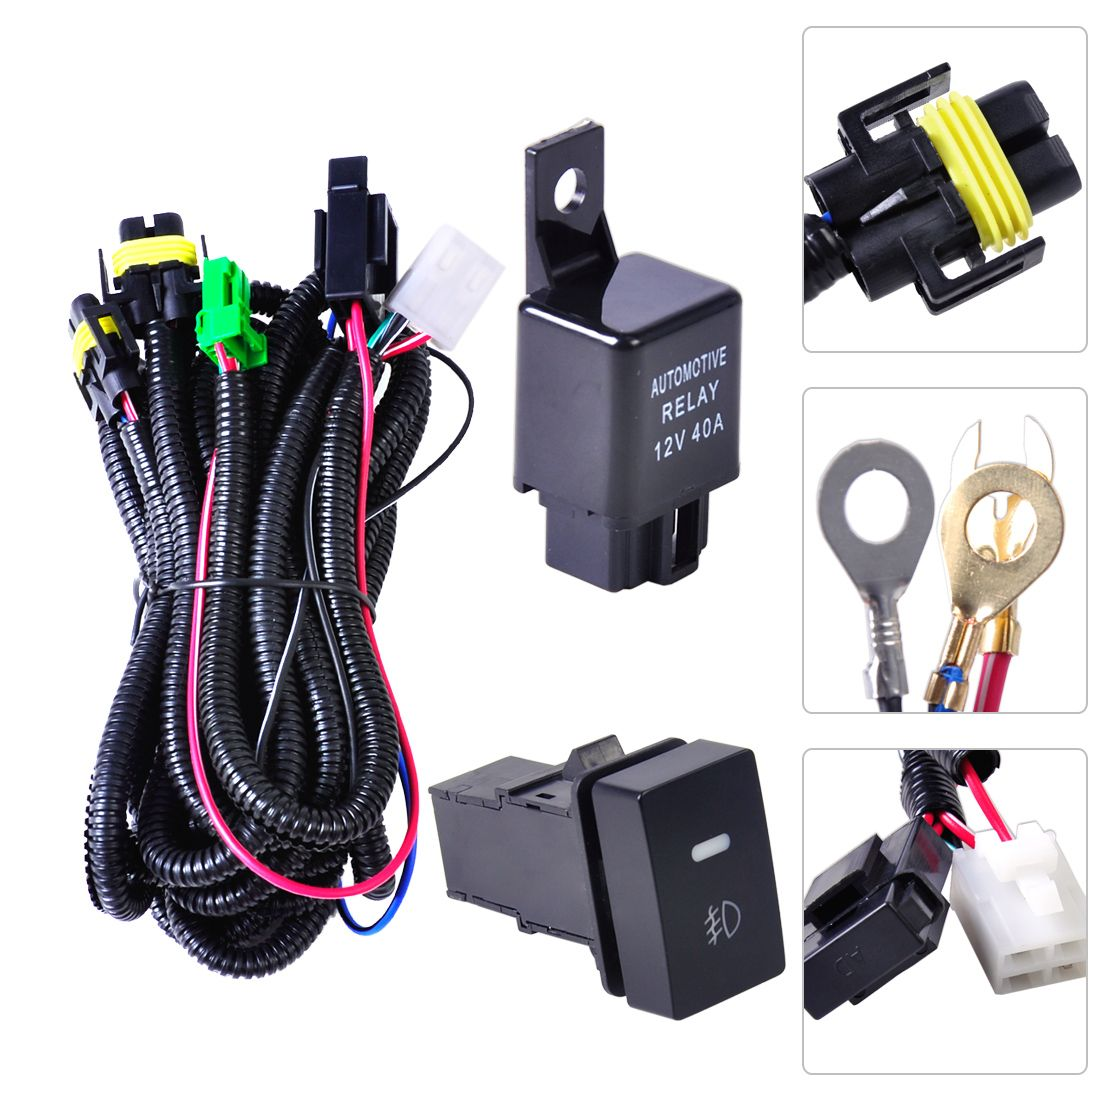 H11 Fog Light Lamp Wiring Harness Sockets Wire Switch With Led Indicators Automotive Relay For Ford Focus Acura Nissan Honda Ford Focus Acura Tsx Nissan